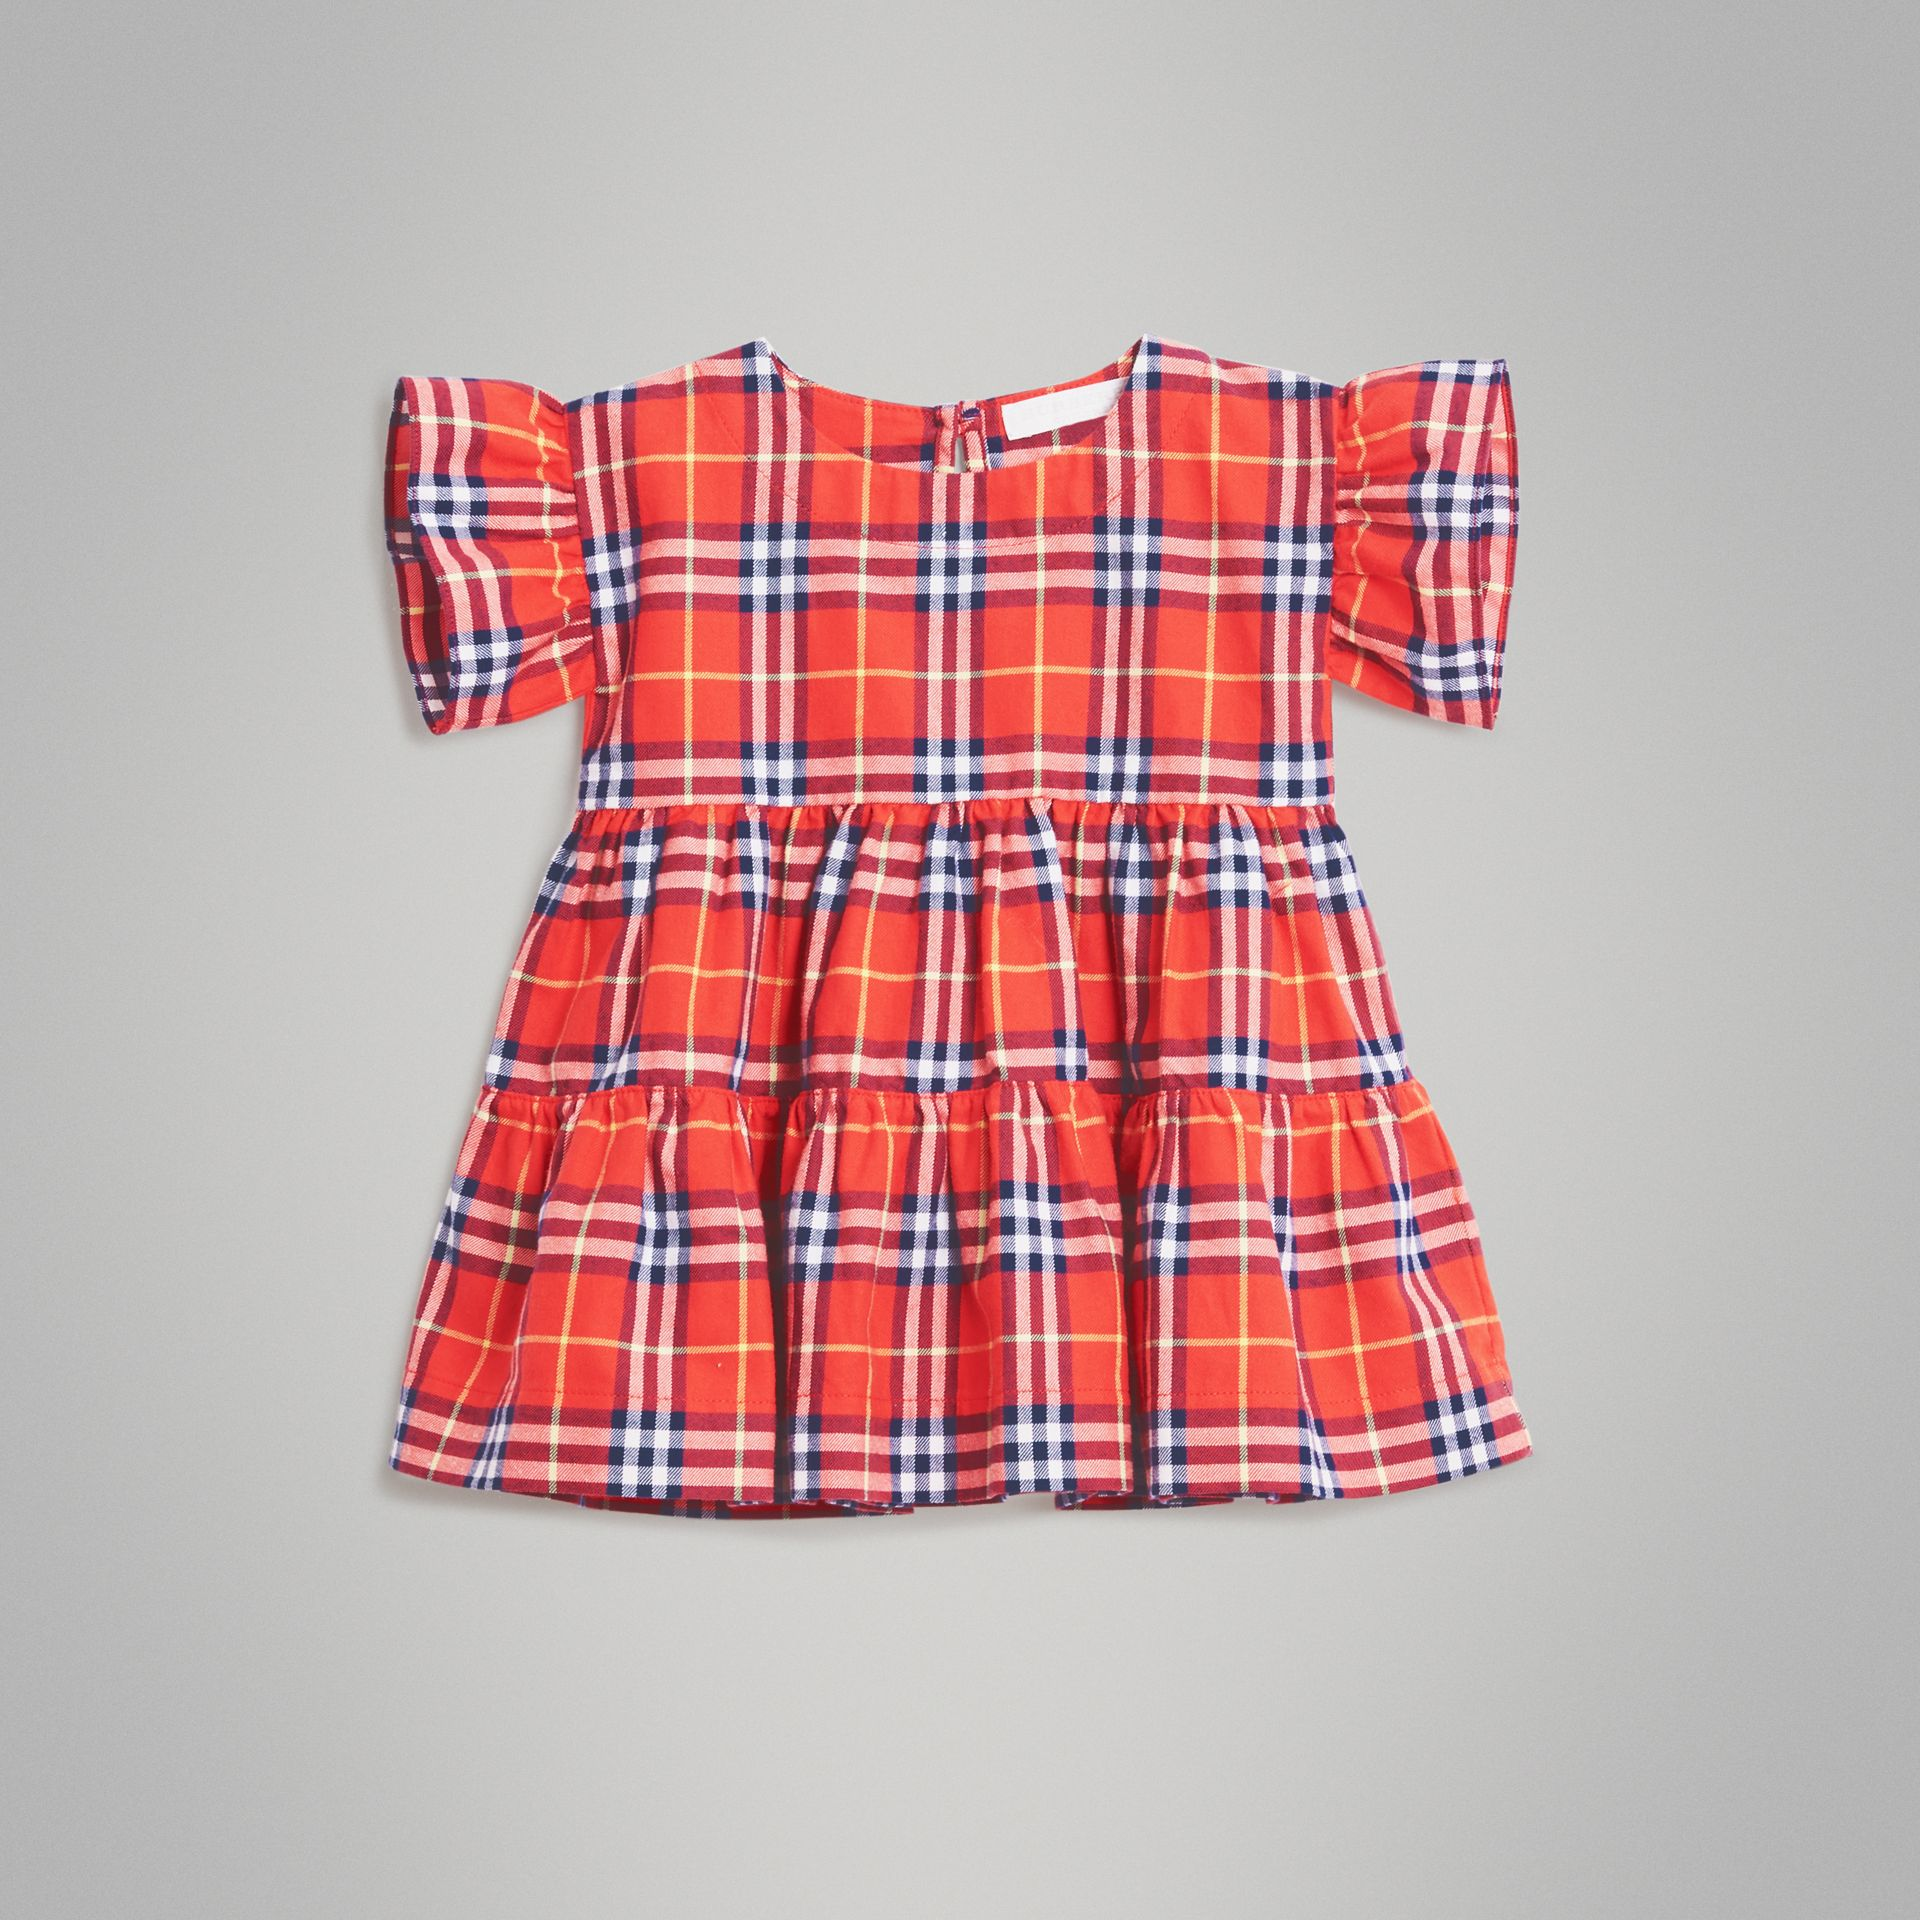 Ruffle Detail Cotton Check Dress in Orange Red - Children | Burberry Australia - gallery image 0